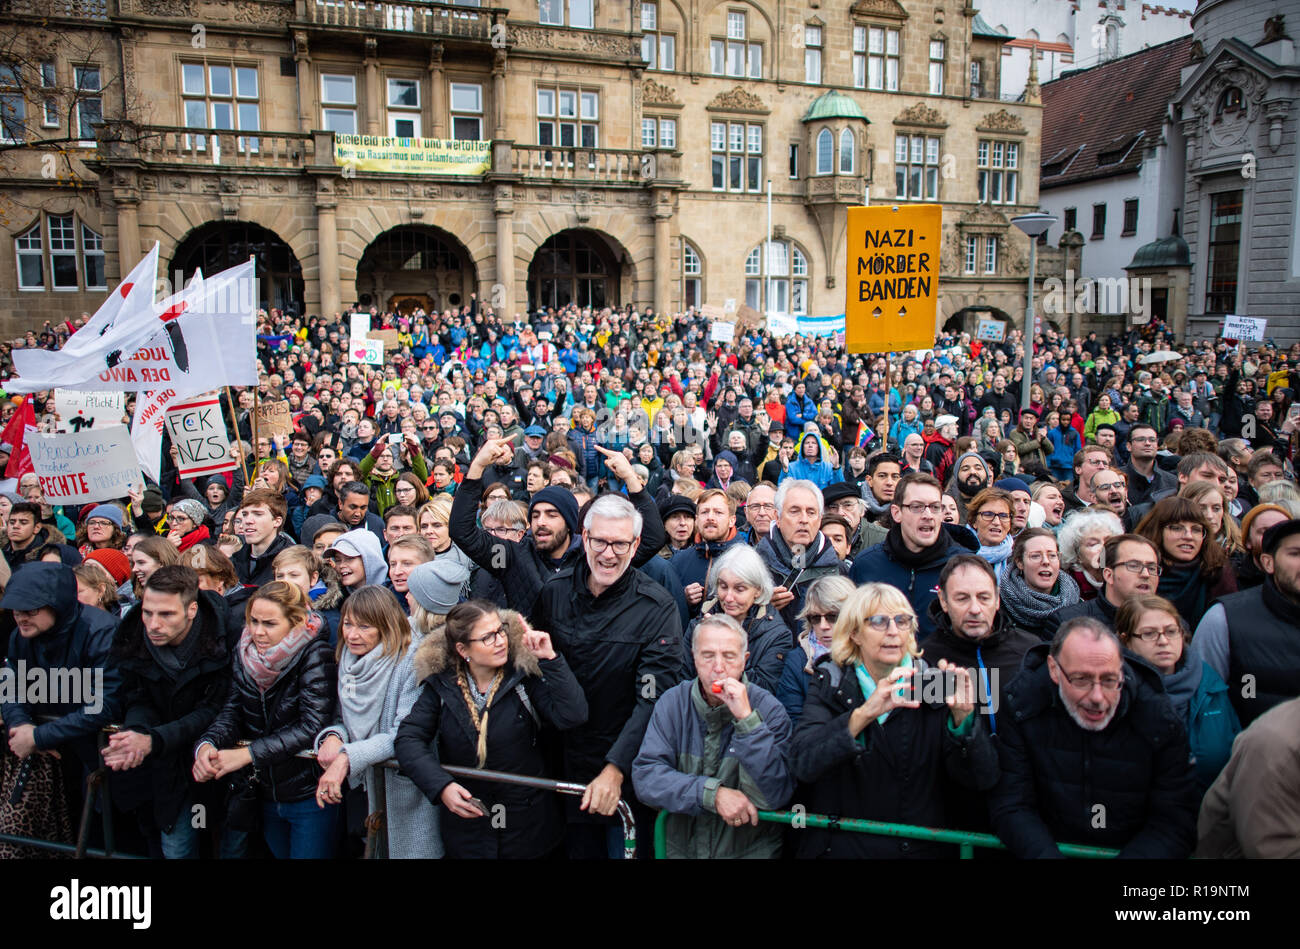 Events Bielefeld Bielefeld Germany 10th Nov 2018 Counter Demonstrators Stand At